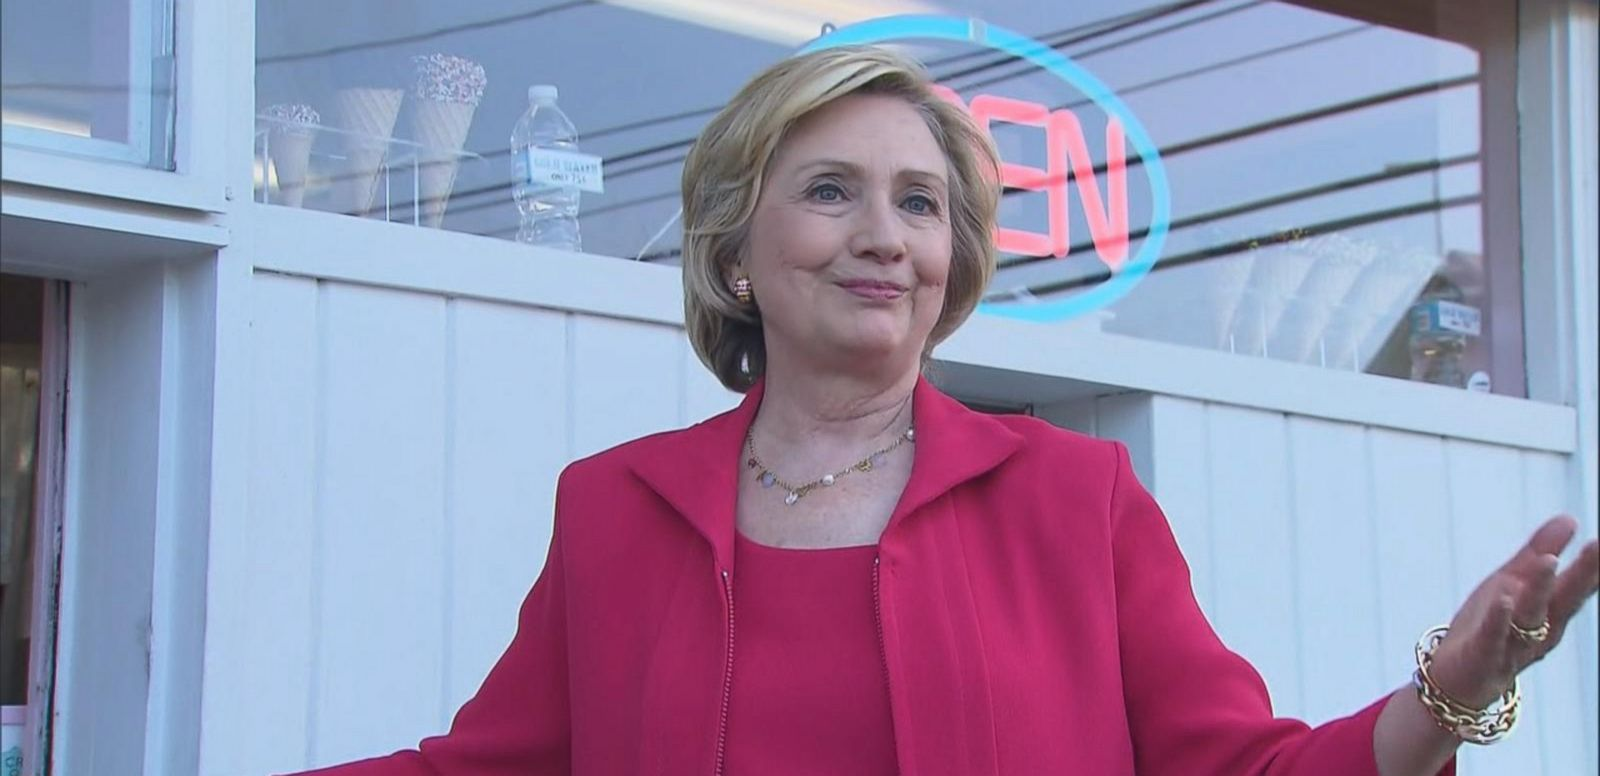 VIDEO: Hillary Clinton Not Fazed By Bernie Sanders' Crowds